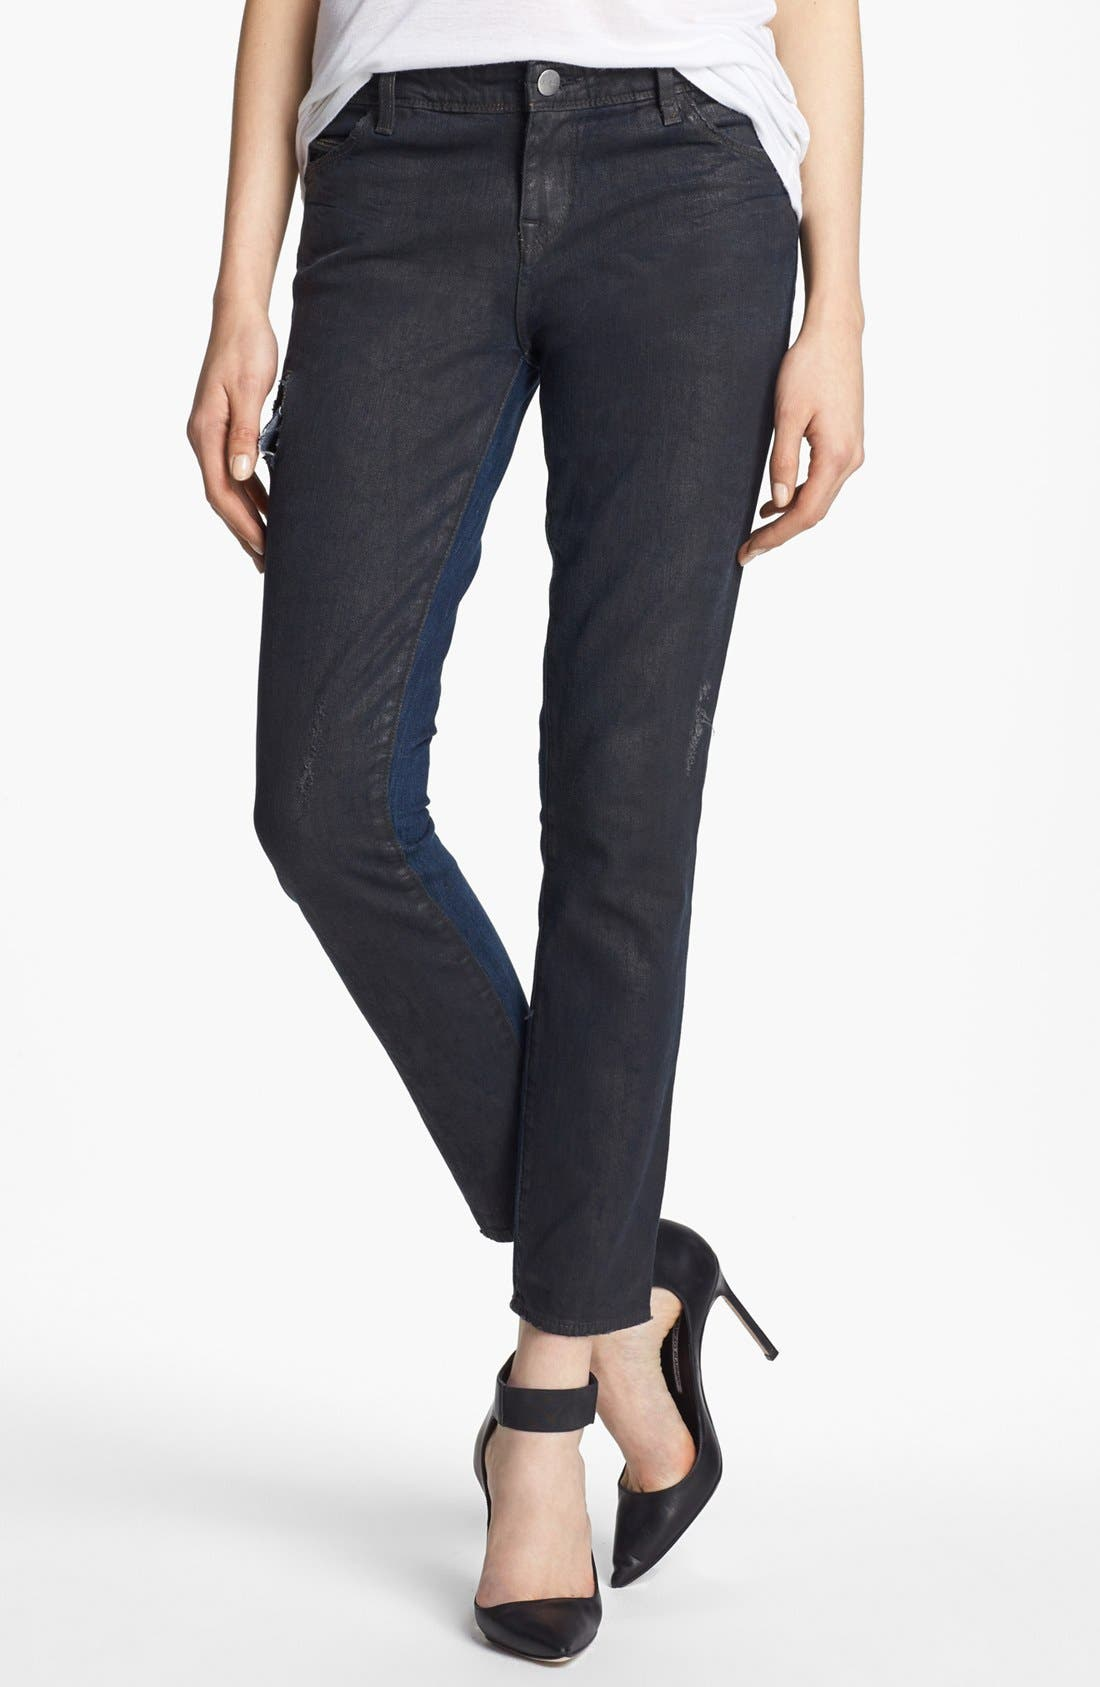 Main Image - EACH X OTHER Waxed Two Tone Boyfriend Jeans